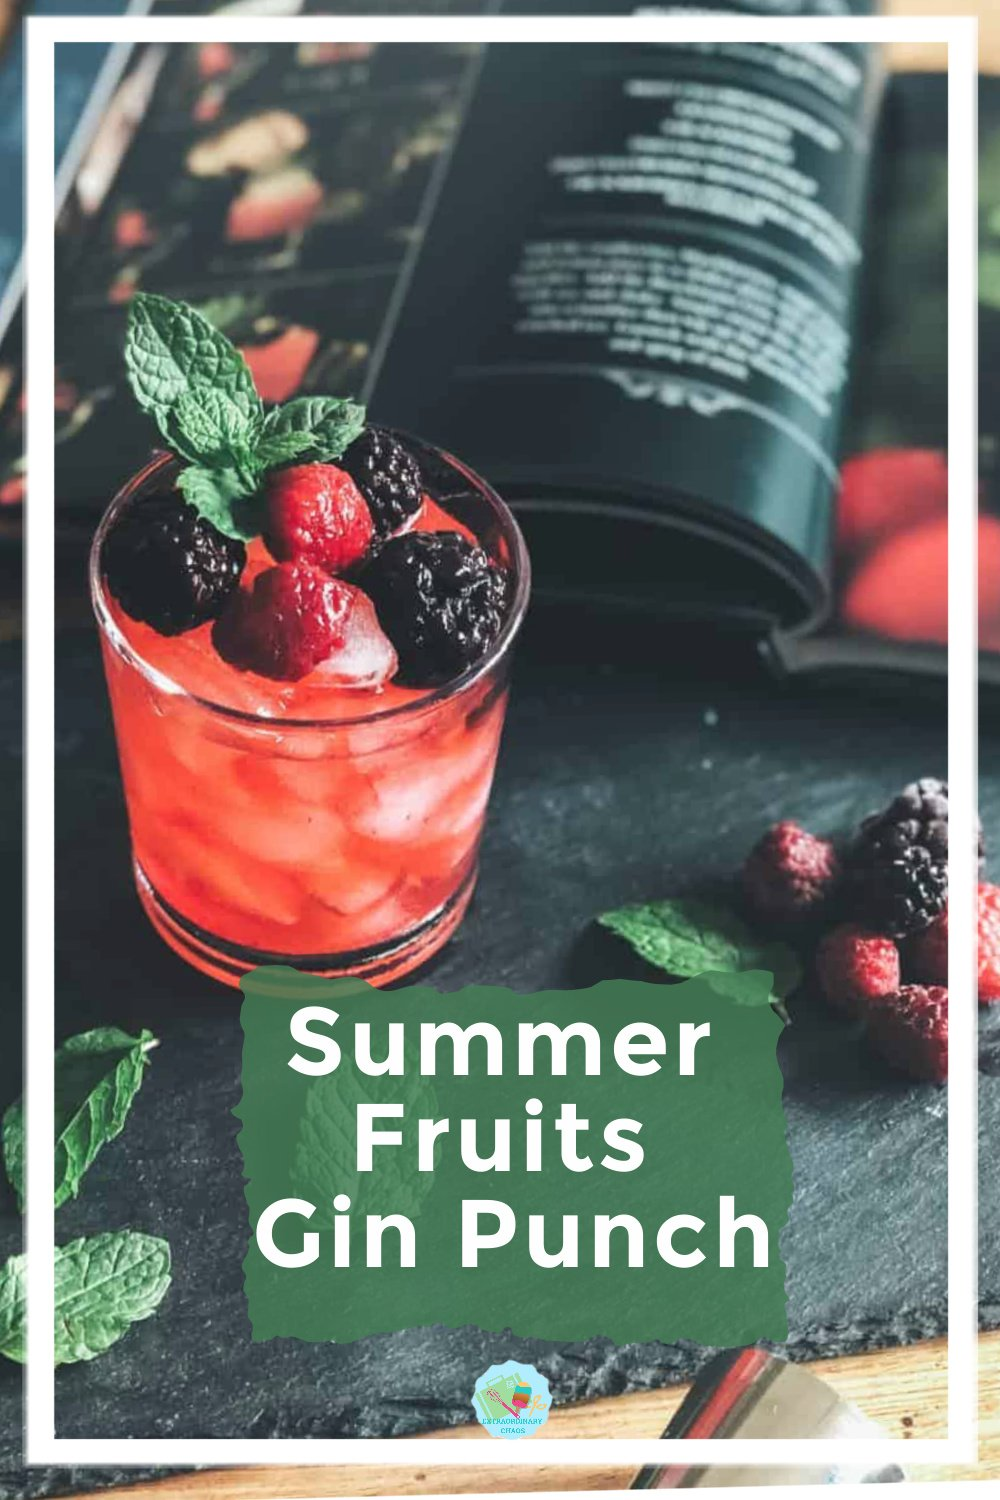 Summer Fruits gin punch-2